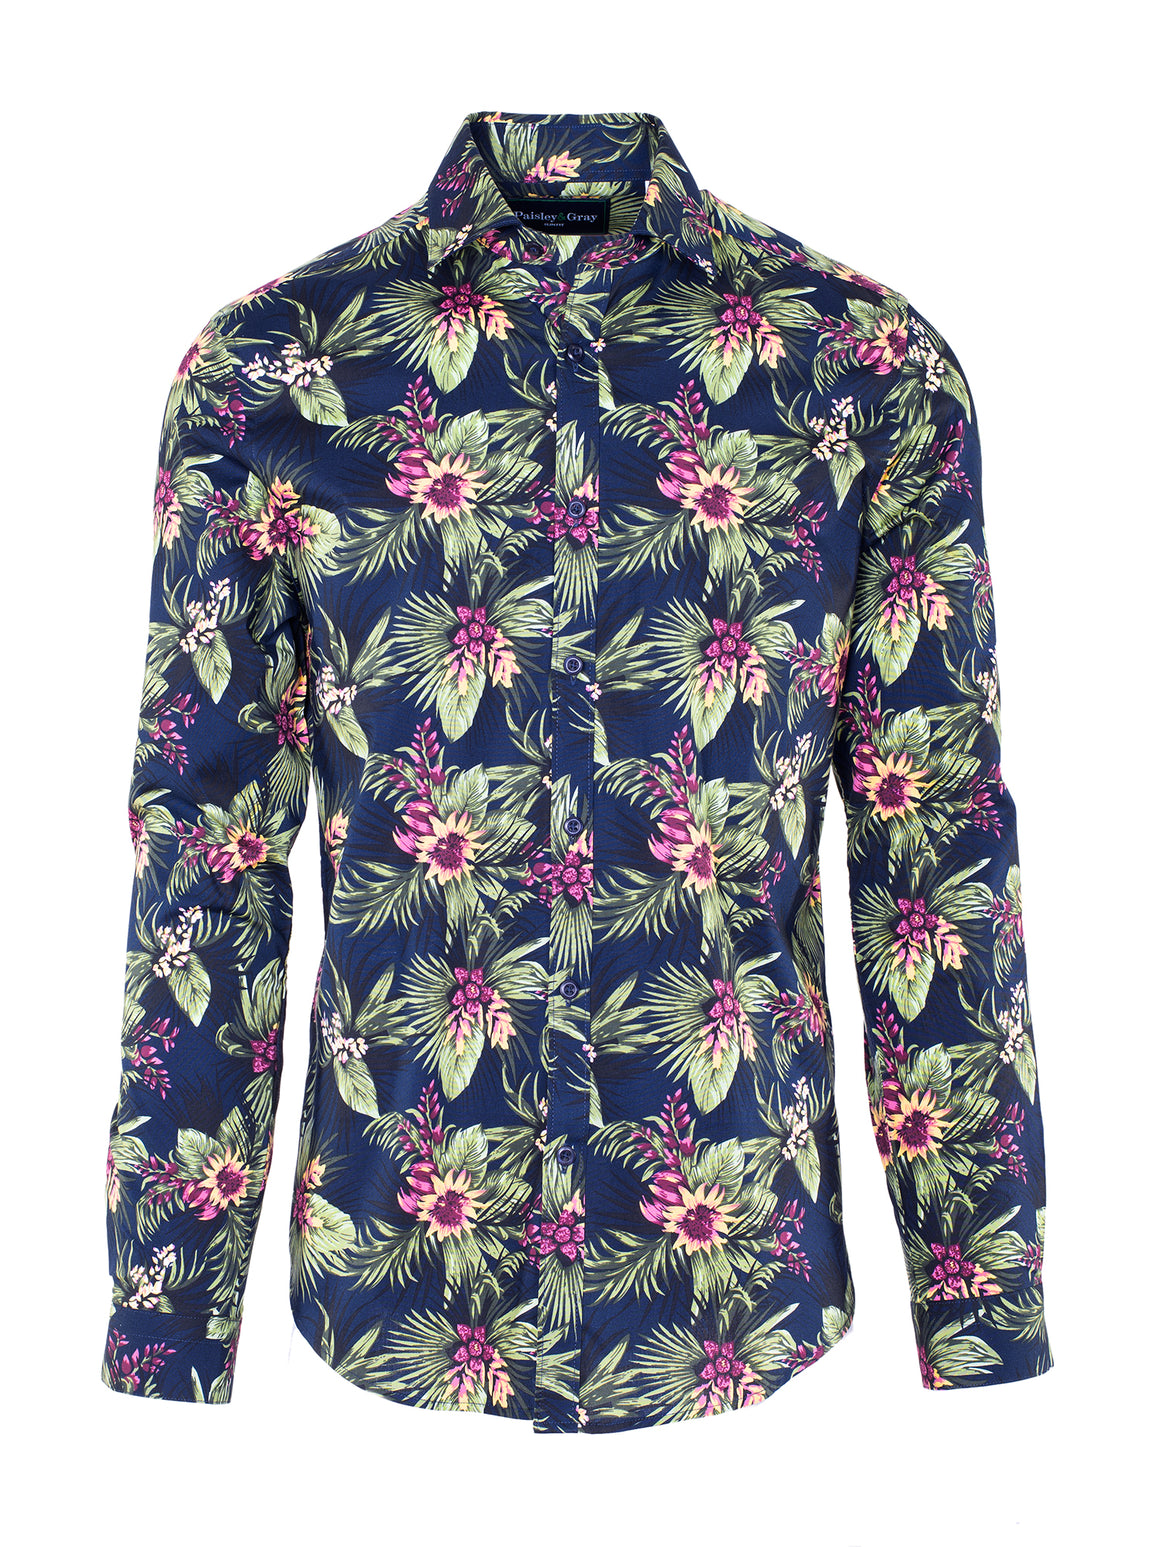 Slim Fit Tropical Shirt - Navy Floral Multi Print